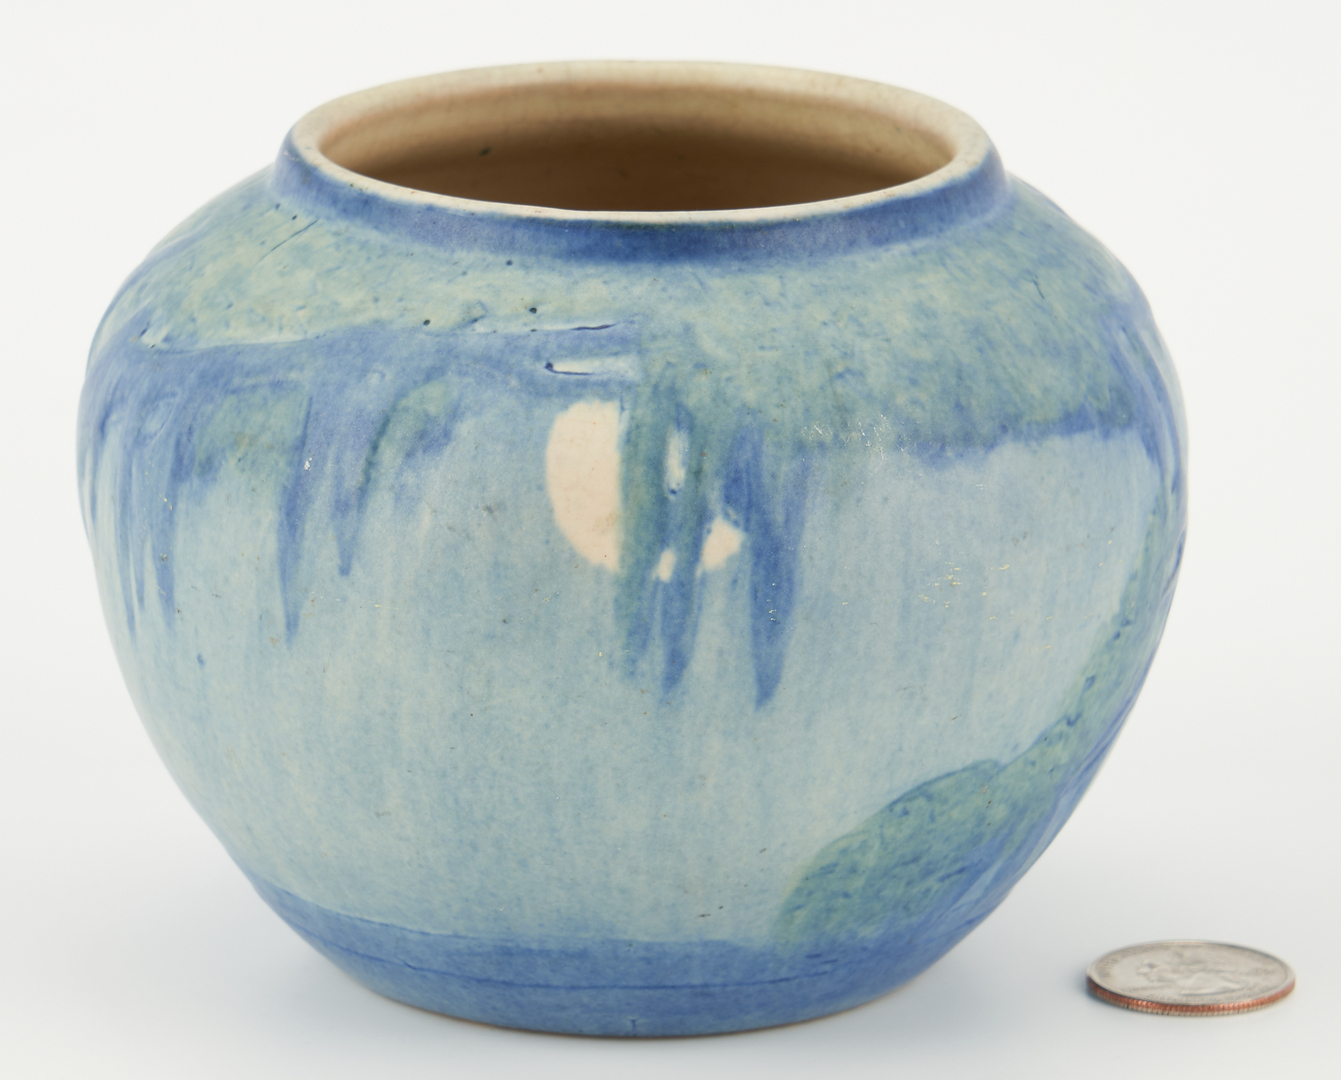 Lot 519: Newcomb College Pottery Vase